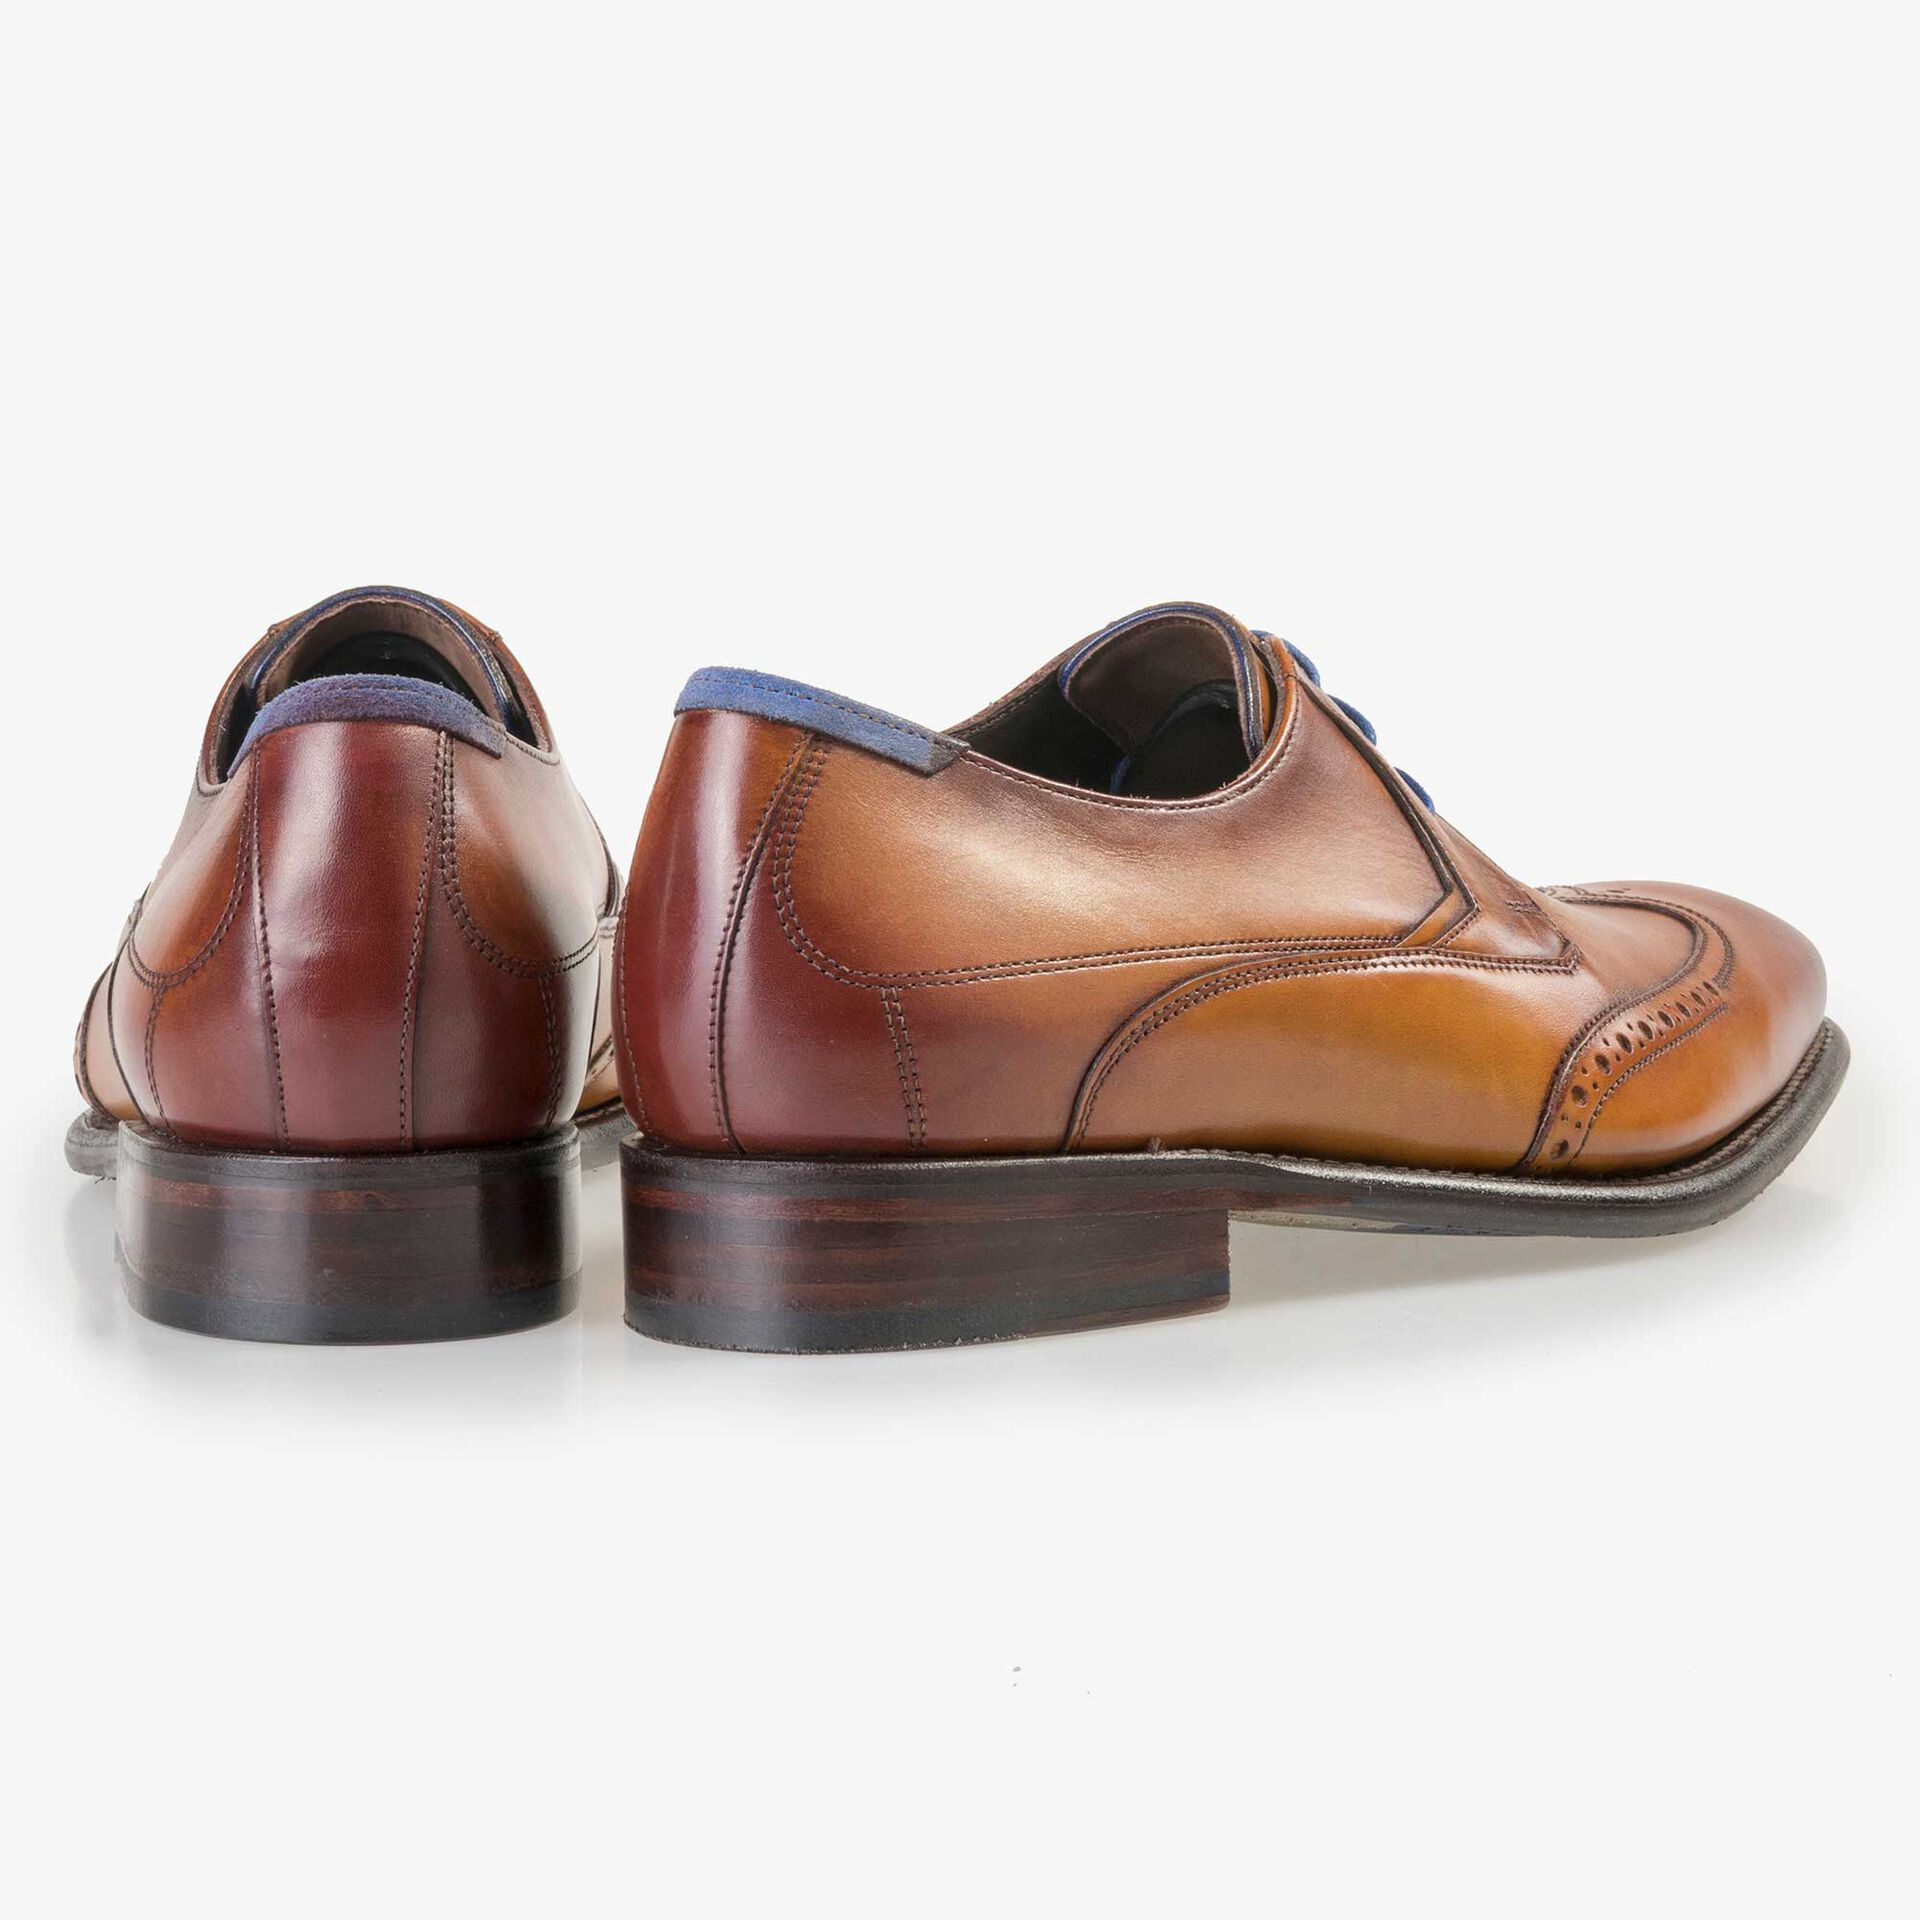 Floris van Bommel men's light cognac-coloured leather lace shoe